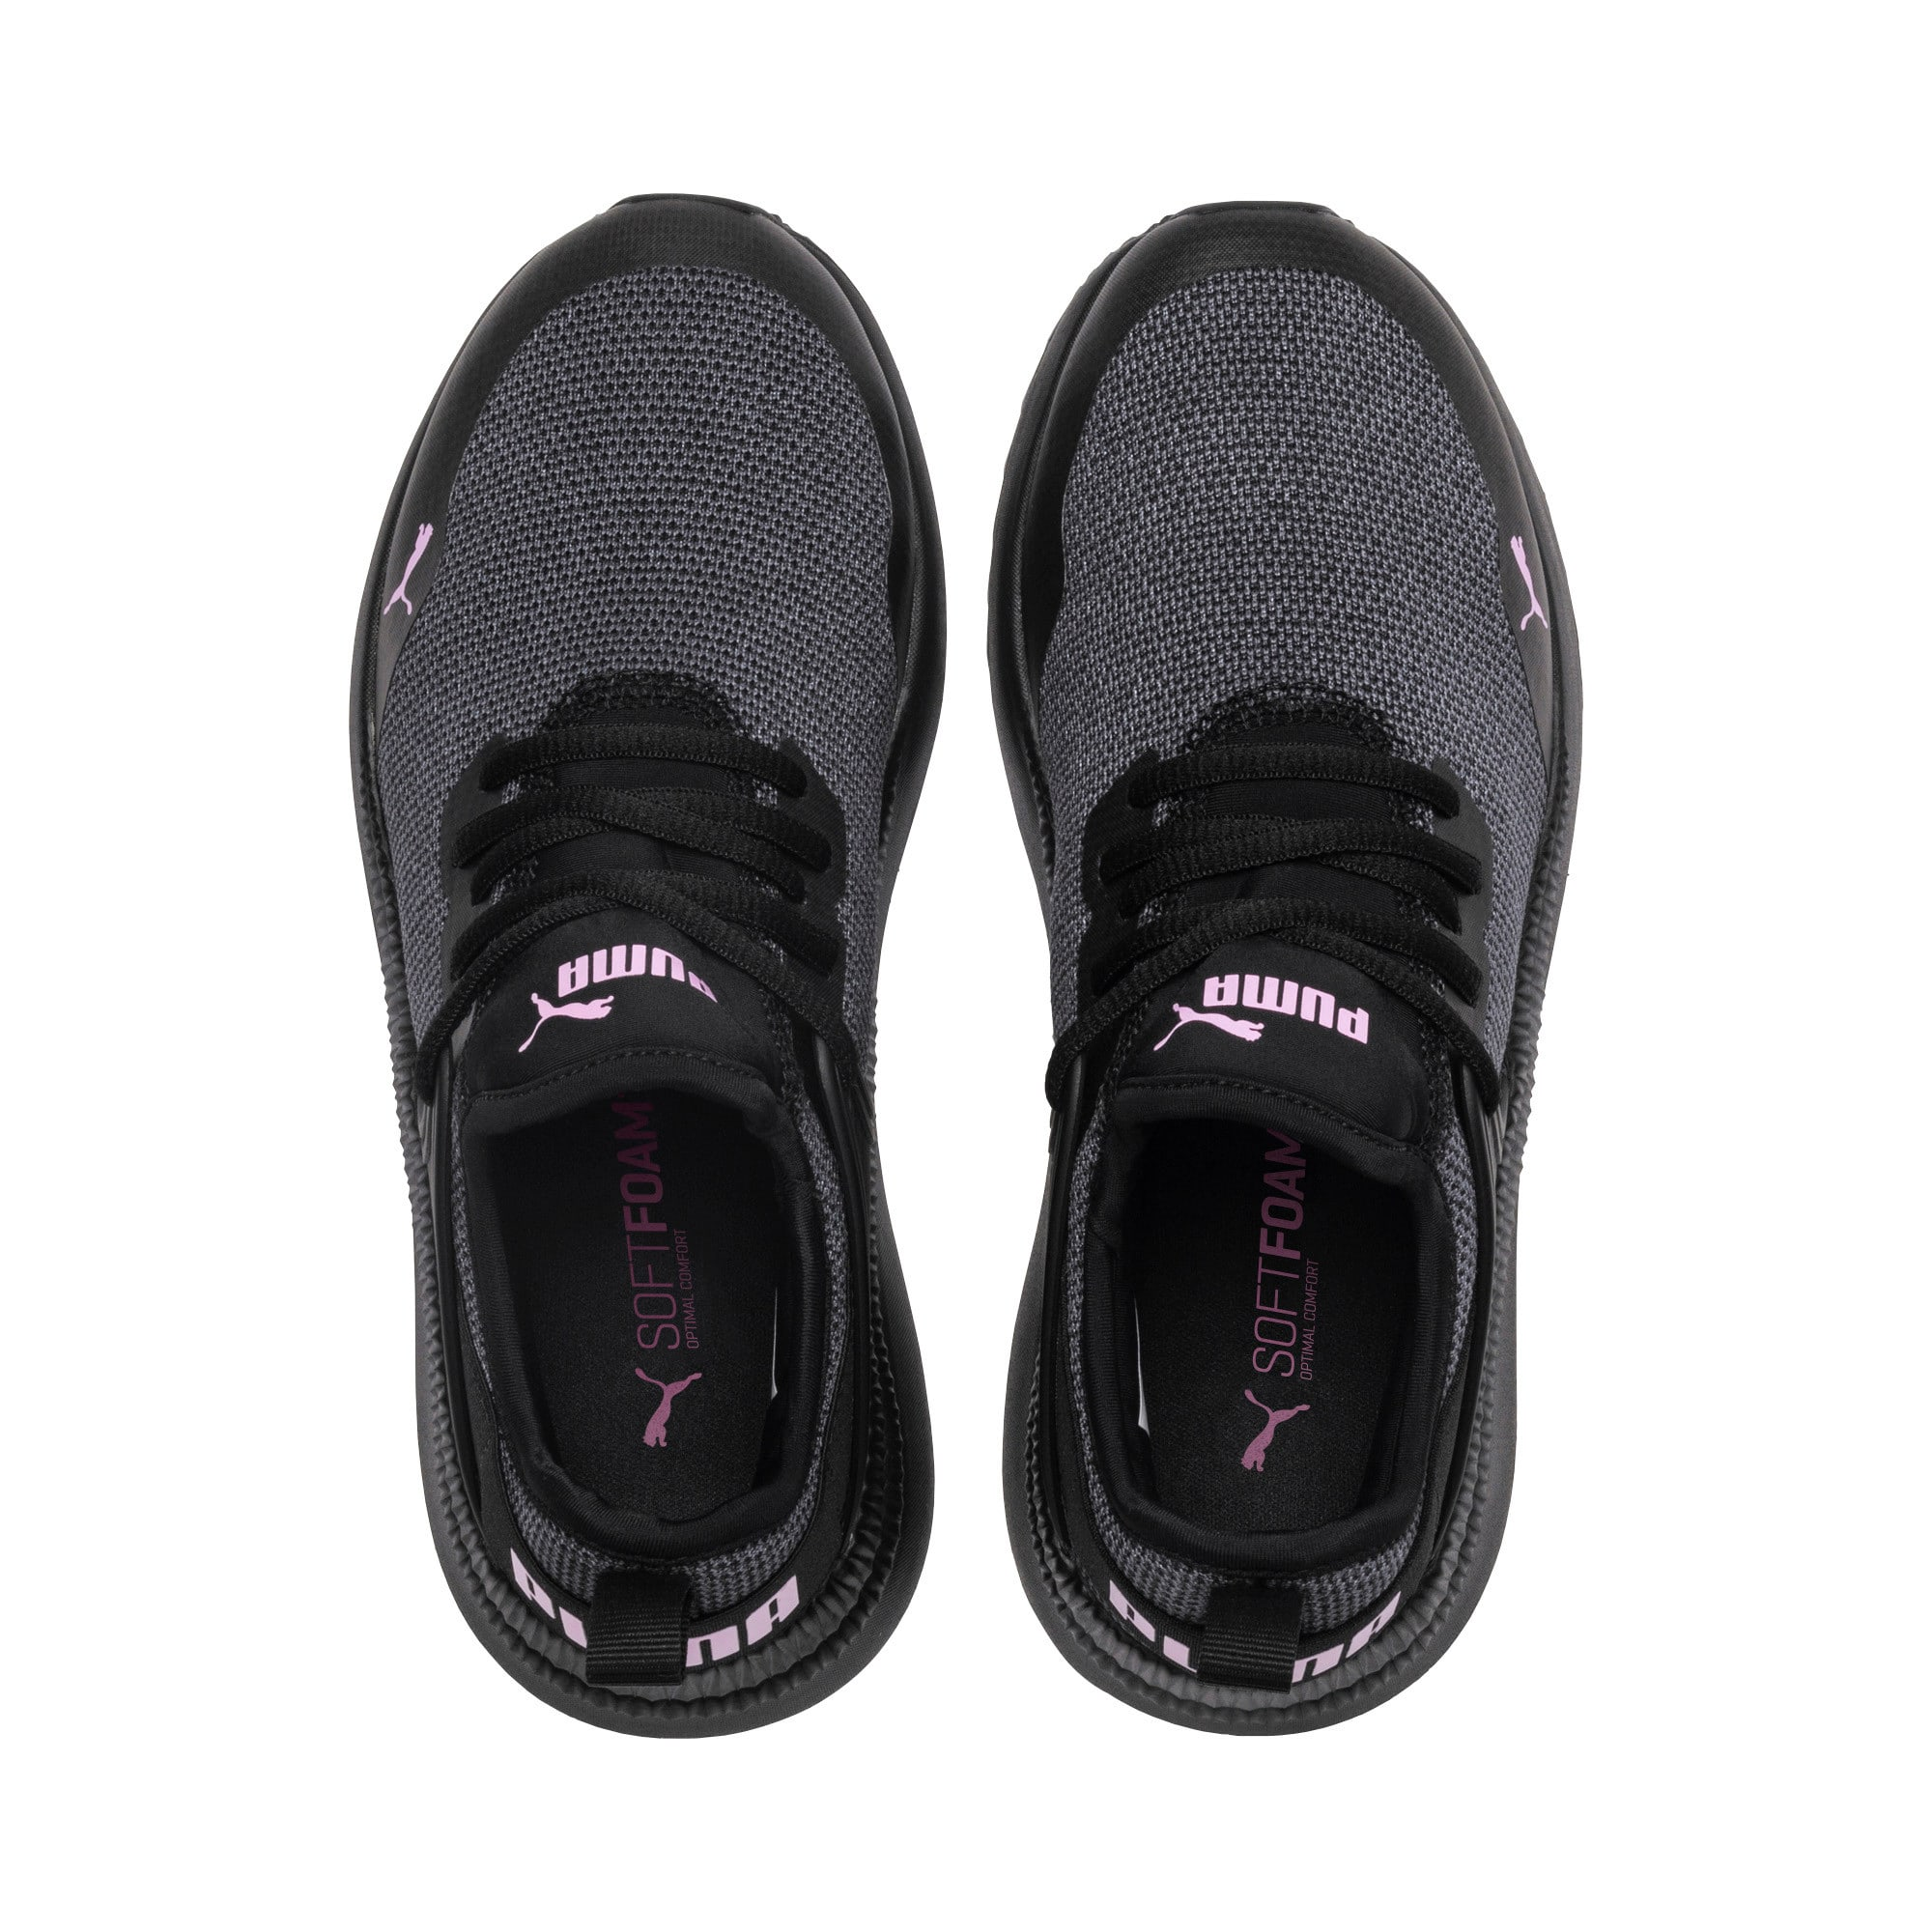 Thumbnail 6 of Pacer Next Cage Knit Kids' Trainers, Puma Black-Puma Black-Orchid, medium-IND